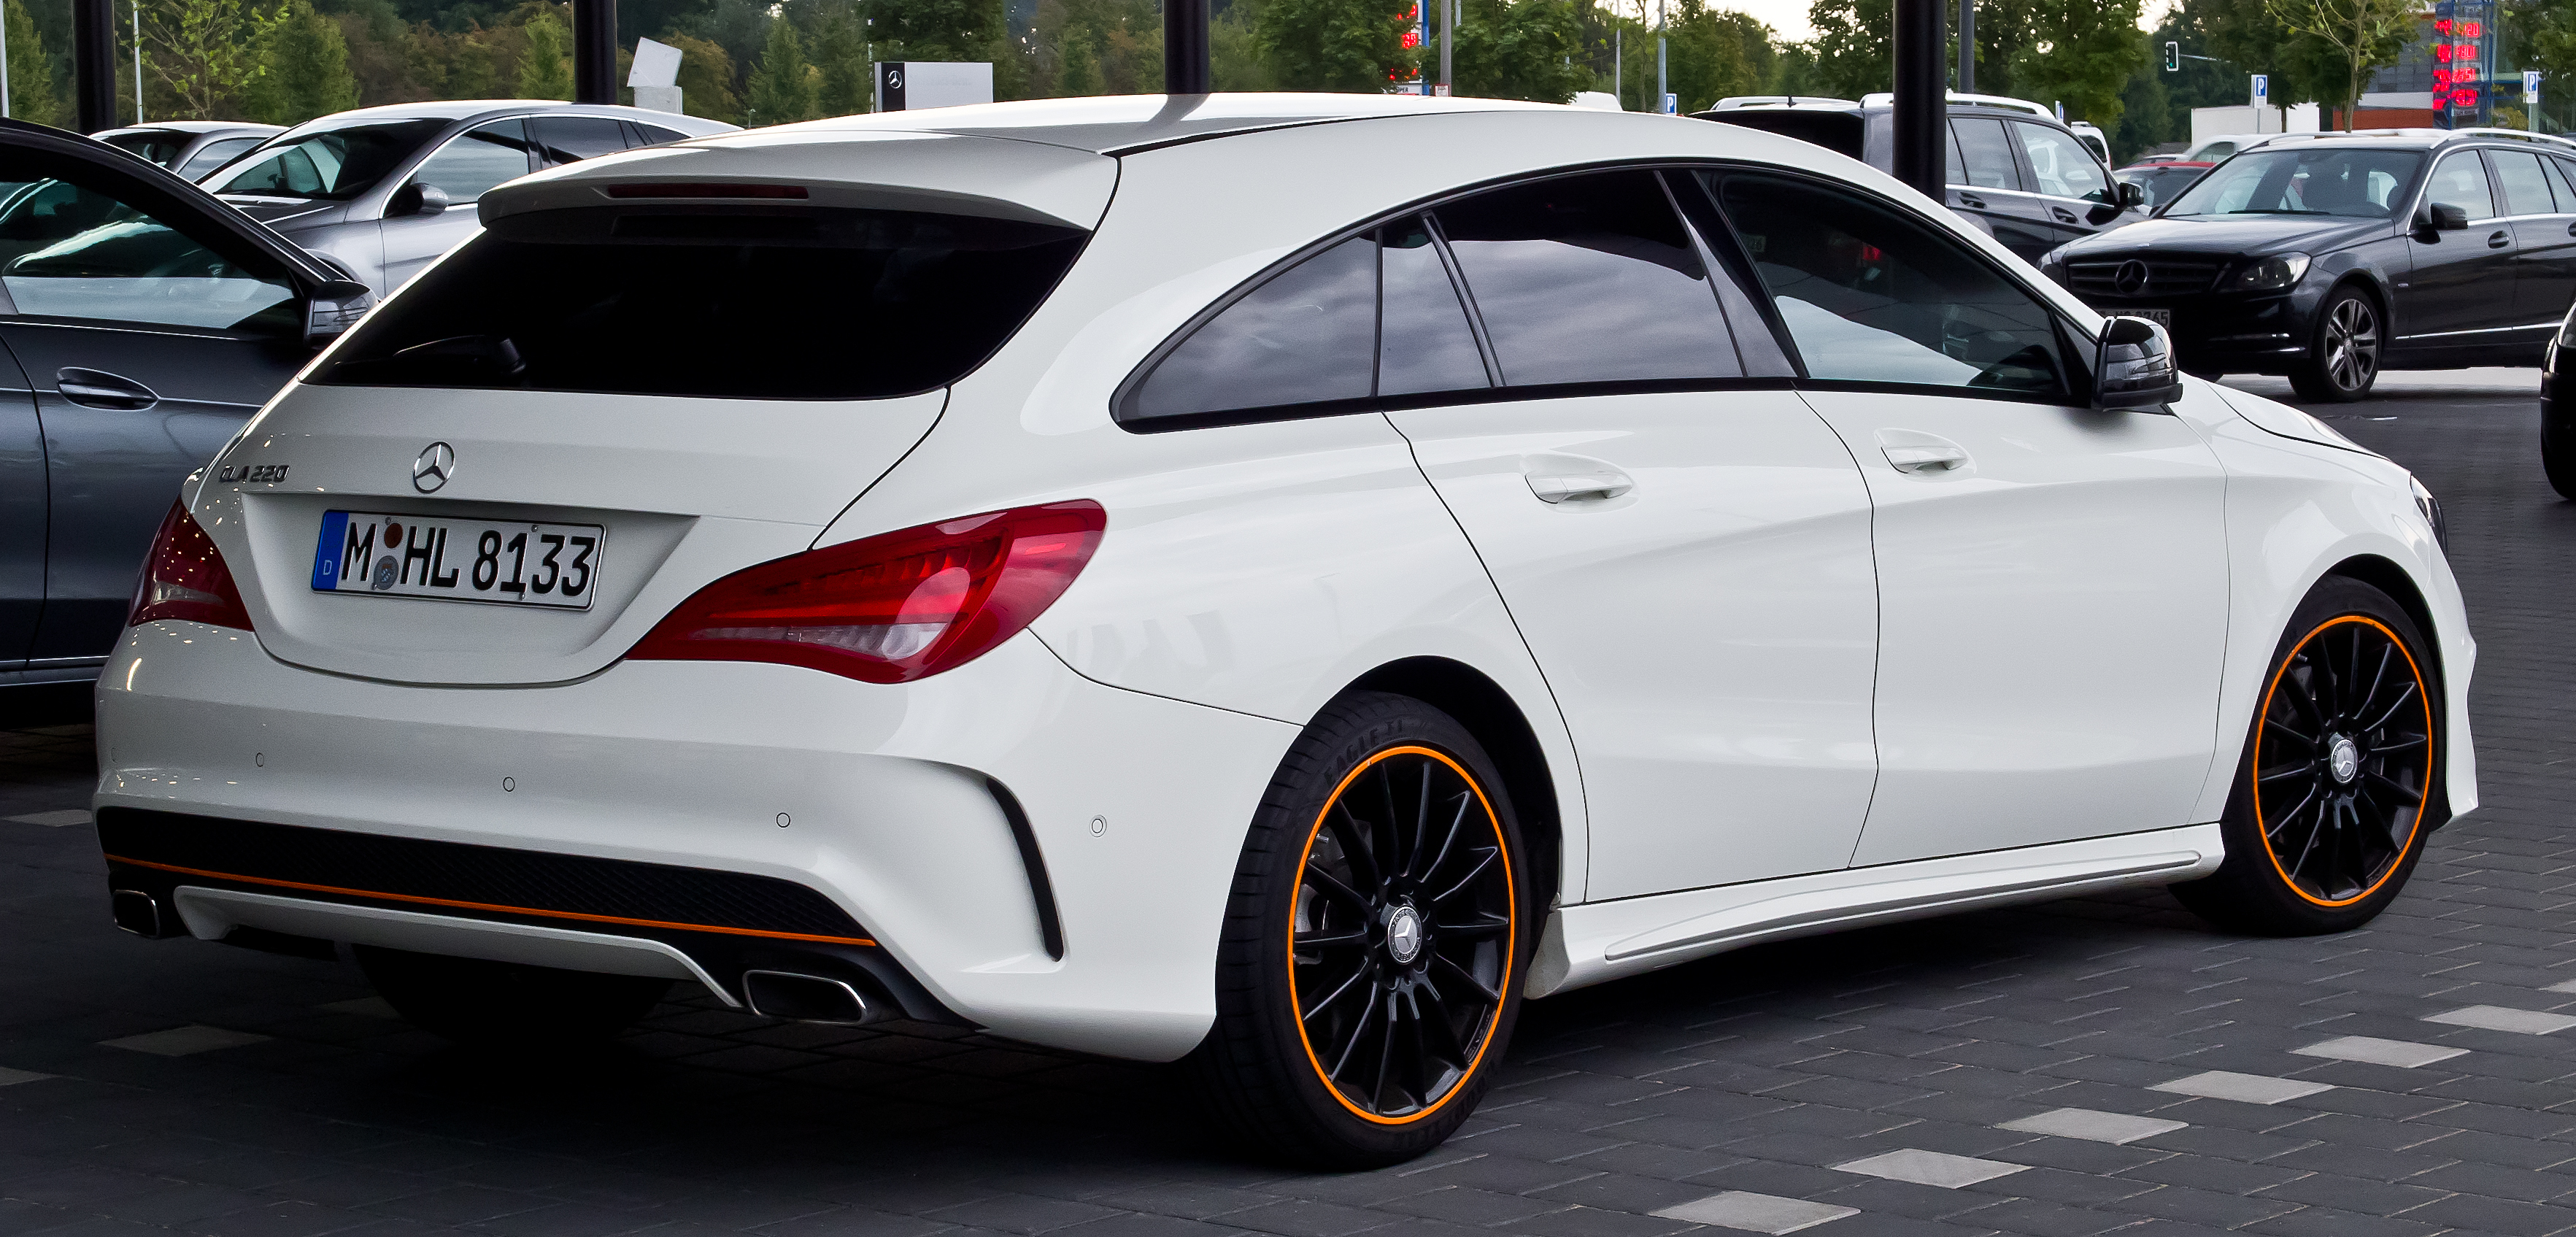 Datei Mercedes Benz Cla 220 D Shooting Brake Orangeart